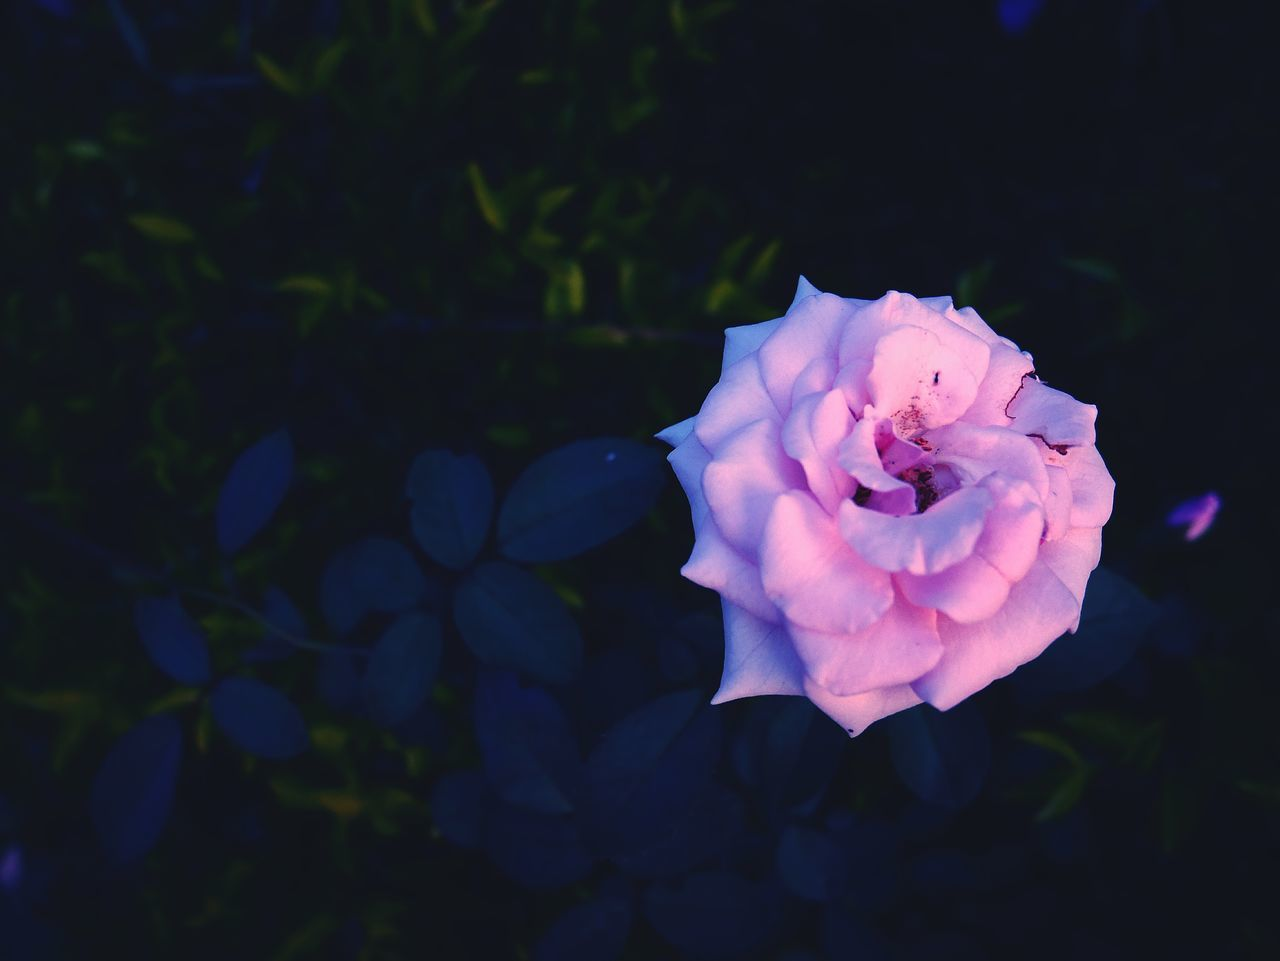 flower, petal, rose - flower, nature, beauty in nature, flower head, fragility, freshness, no people, close-up, outdoors, blooming, growth, plant, day